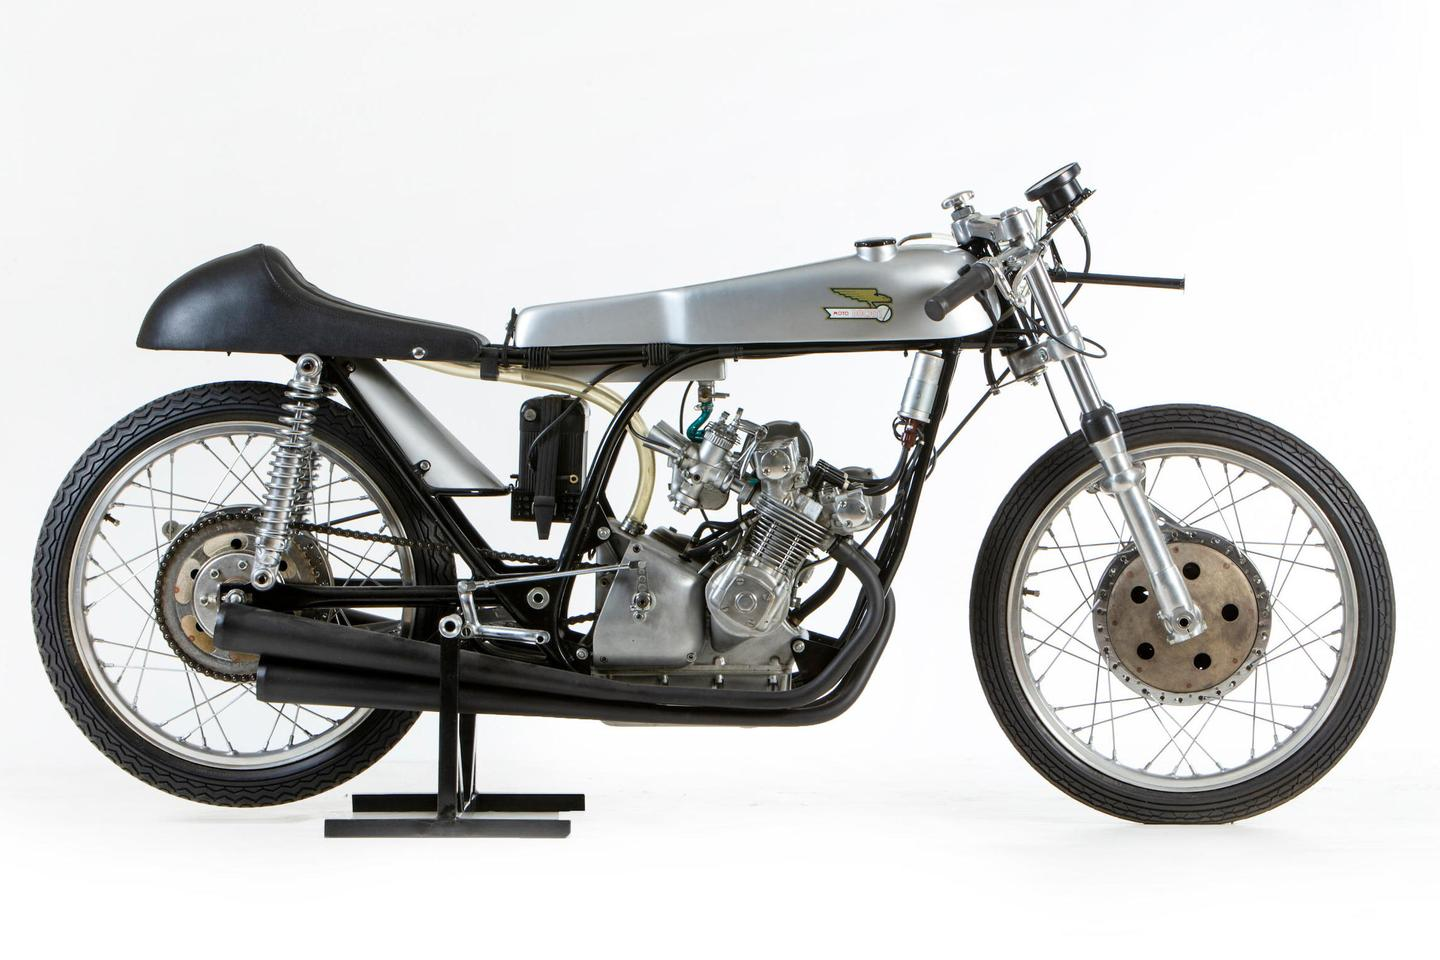 The 1965 Ducati 125cc Four-cylinder Grand Prix Racing Motorcycle